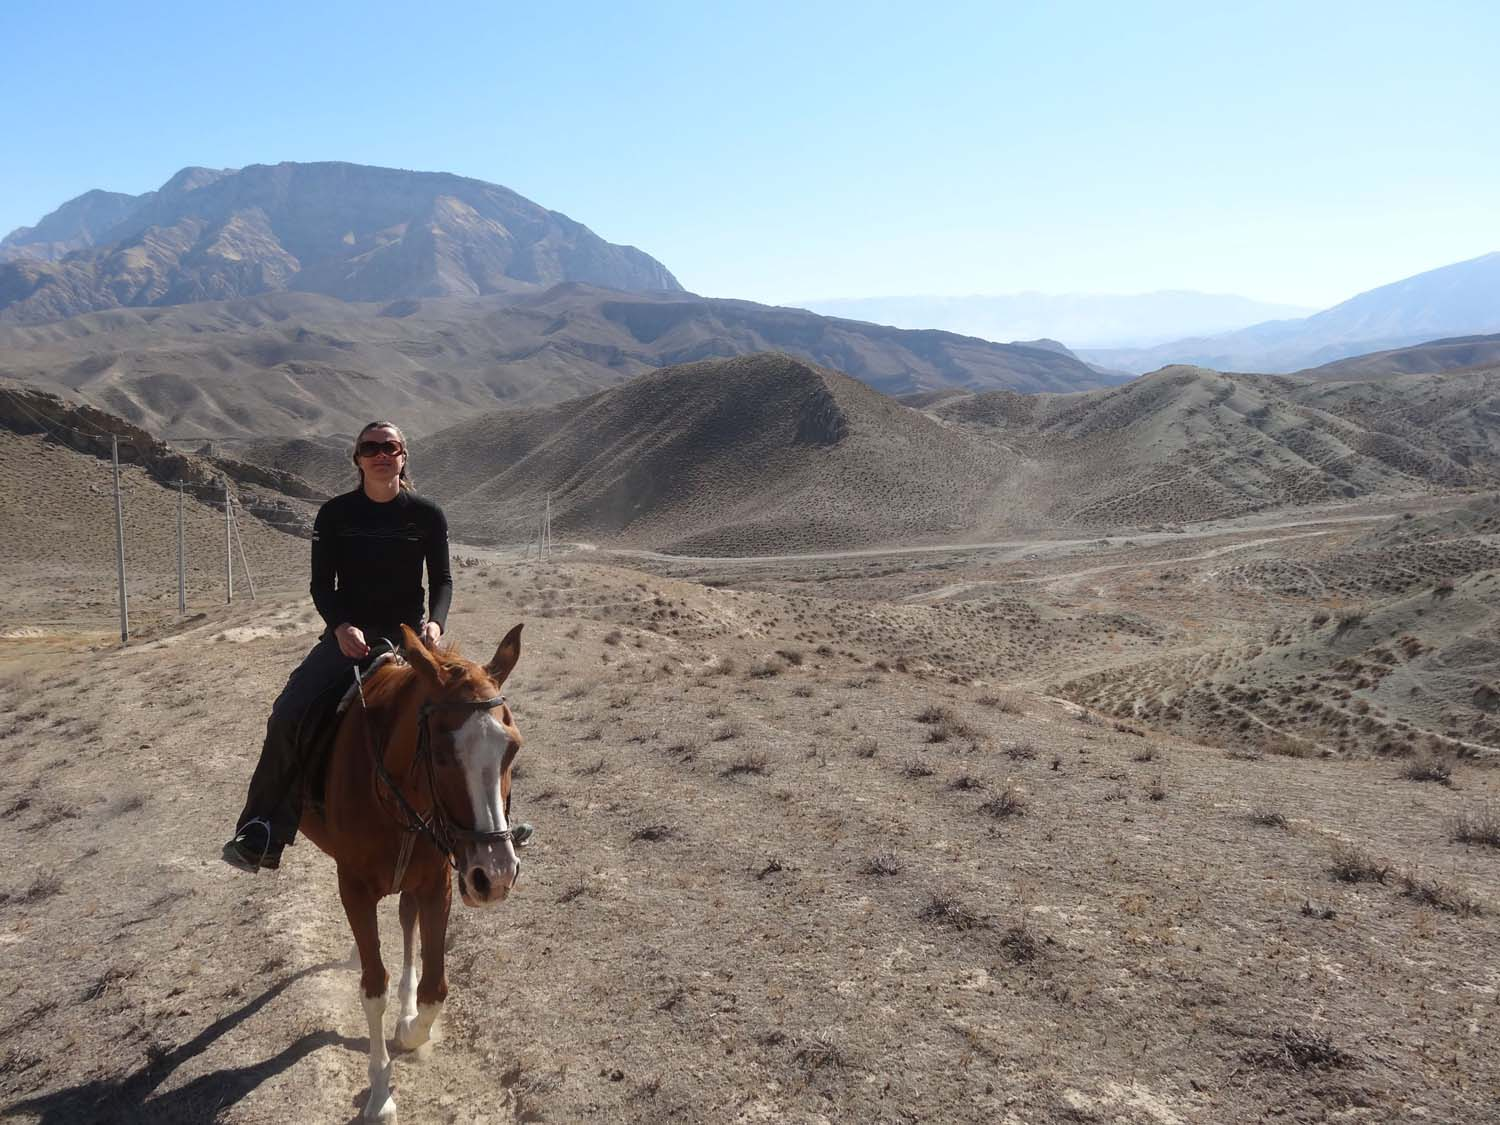 riding the magnificent Akhal-Teke horses in the foothills of the Kopet Dag mountains